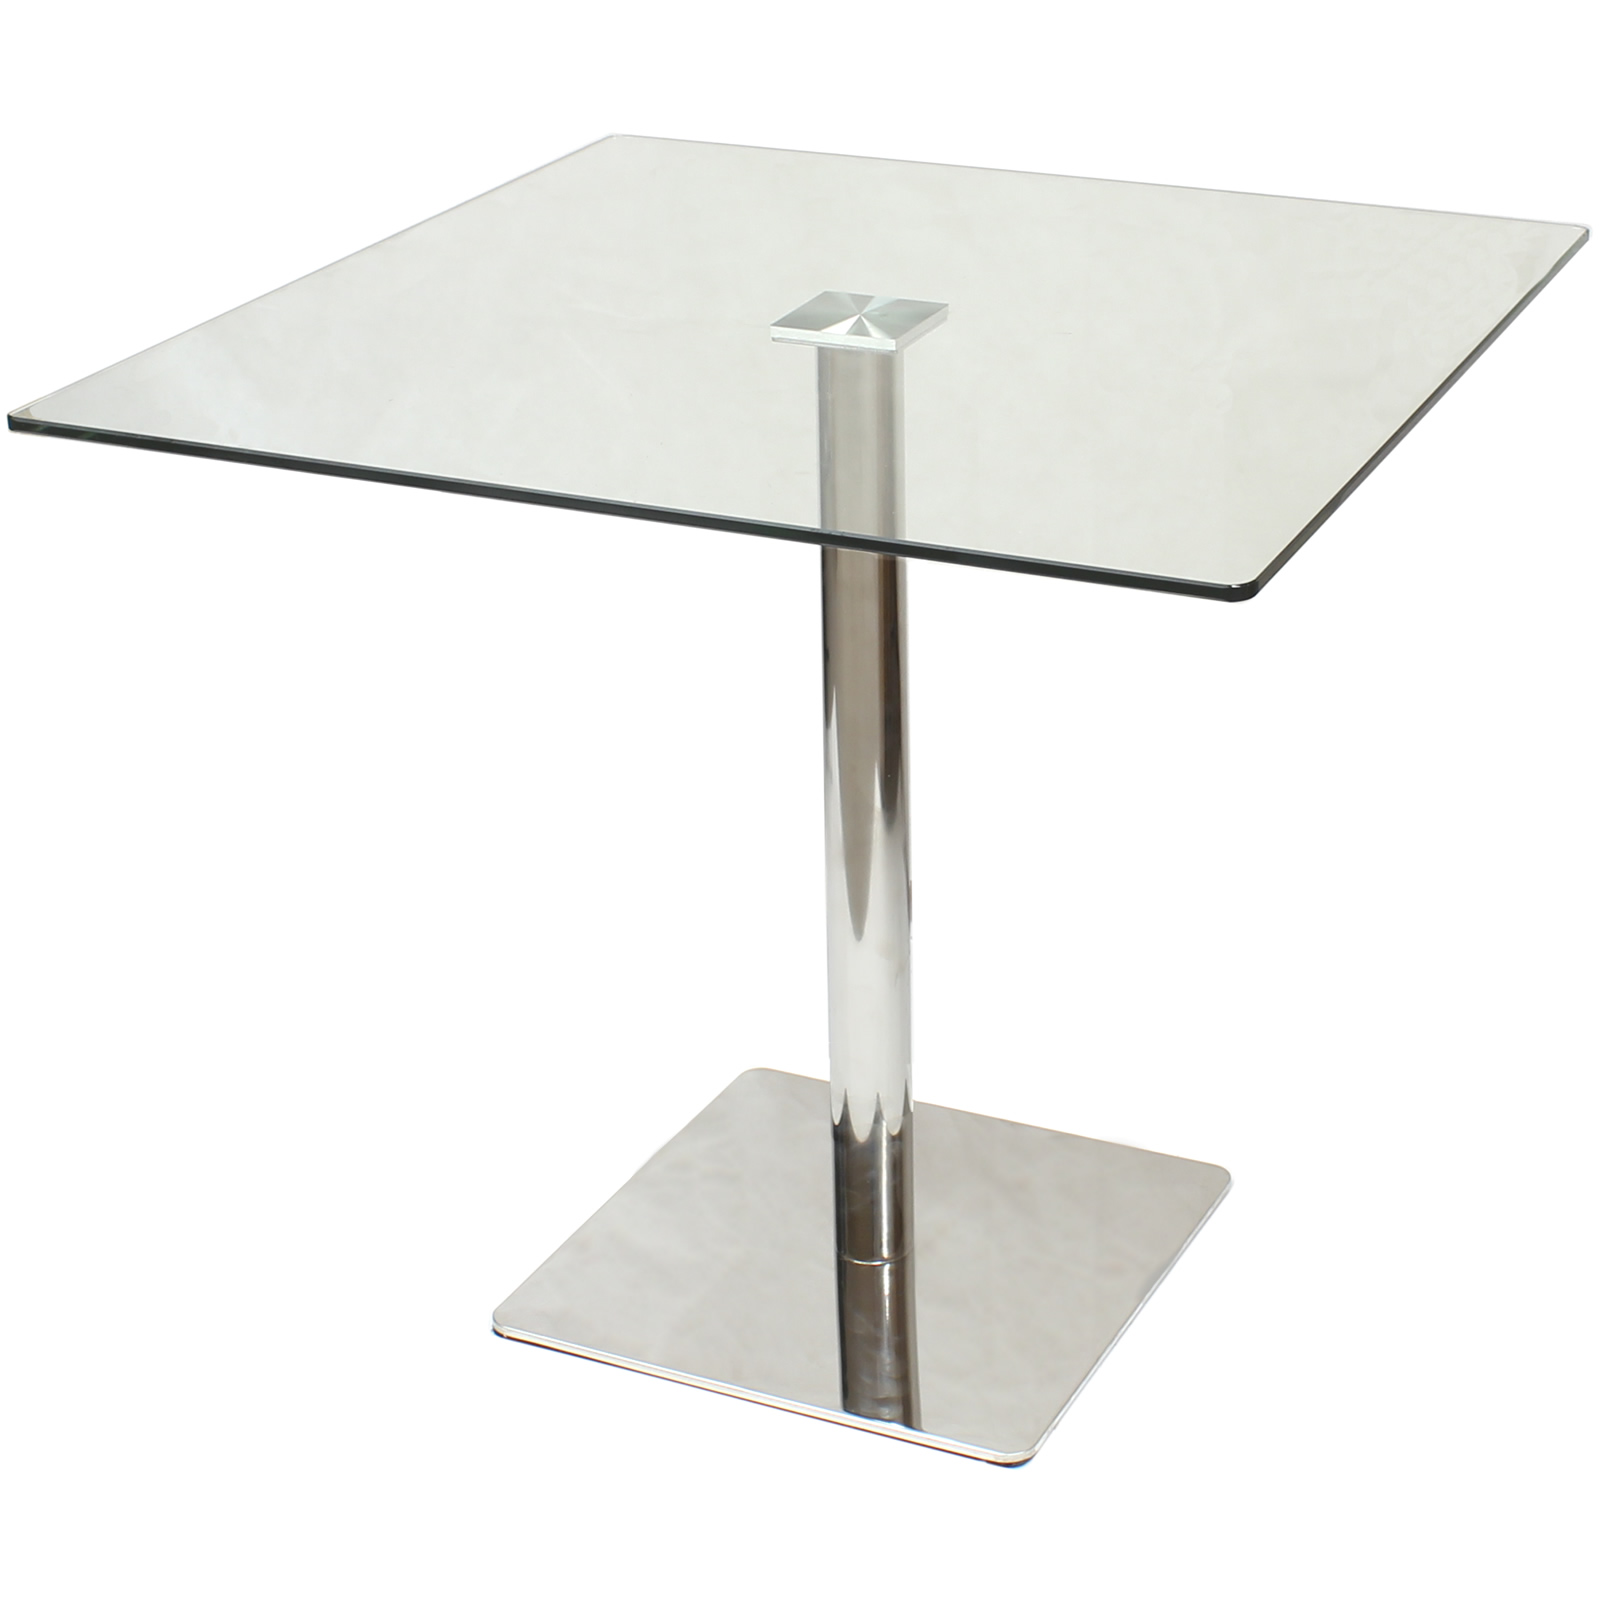 Large square clear glass dining bistro table bar cafe for Square glass dining table